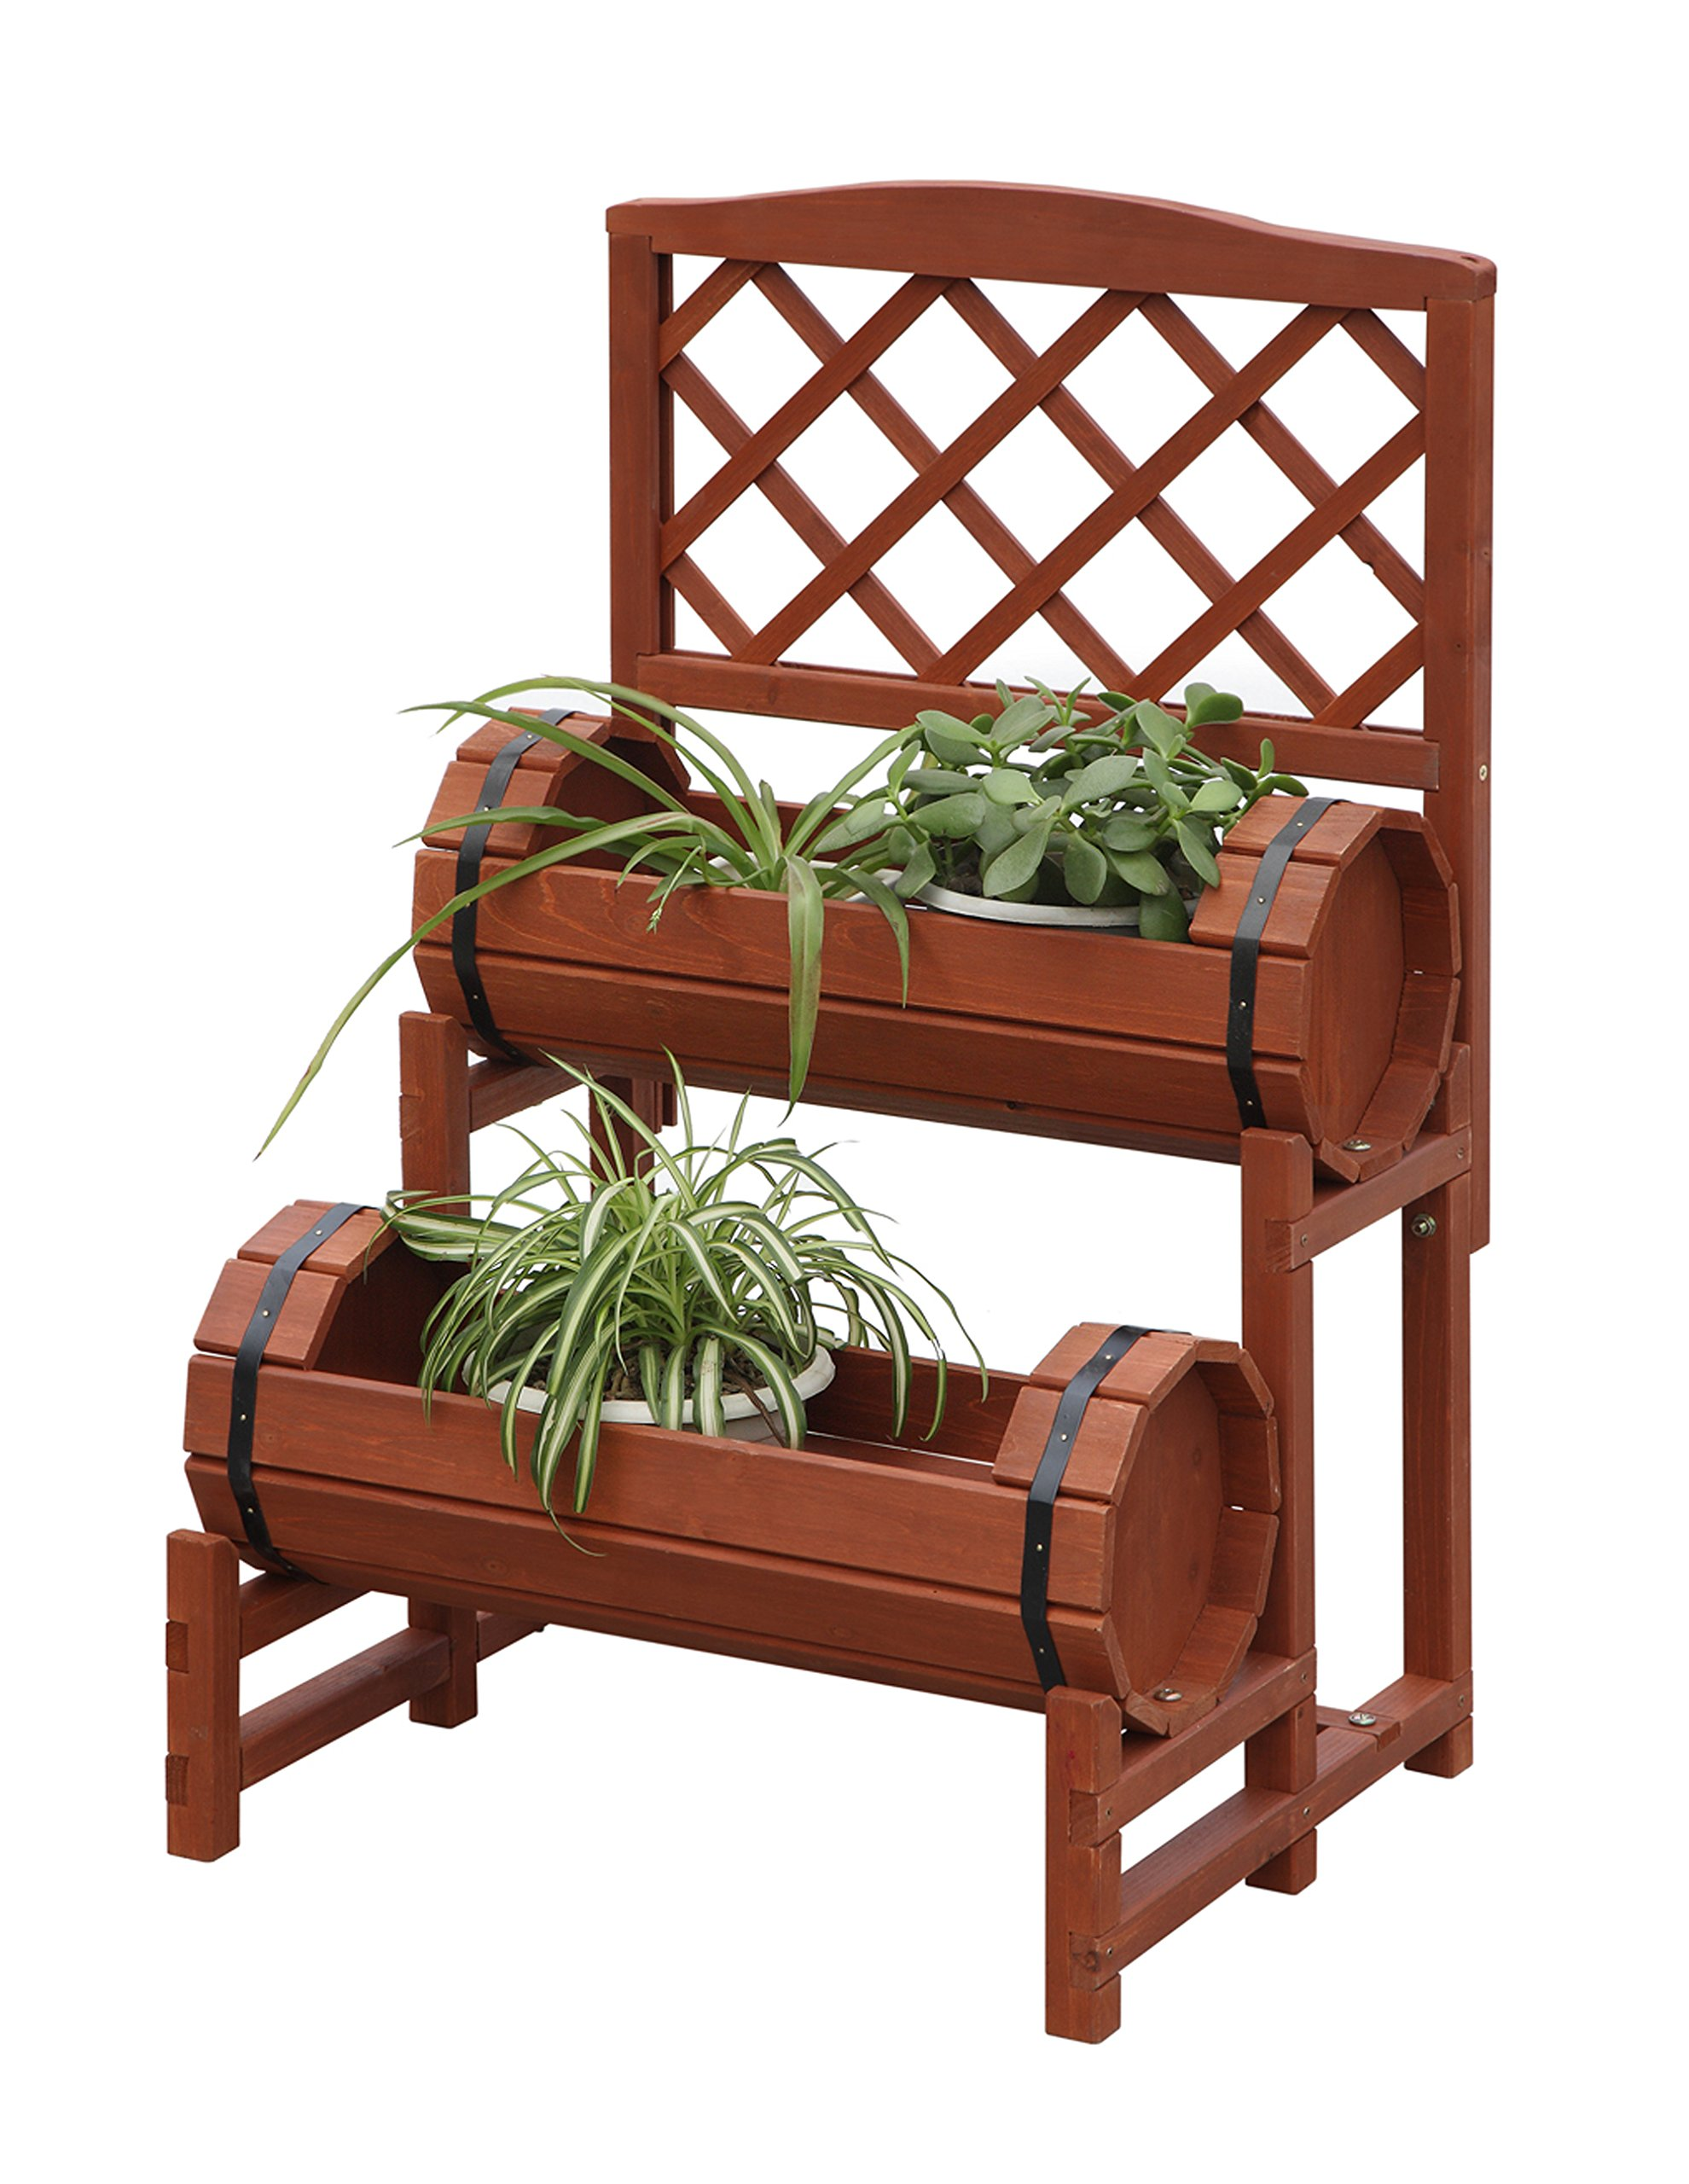 Cascading Garden Planter 2 Tier Plant Stand Raised Garden Bed Wood Barrel  Design